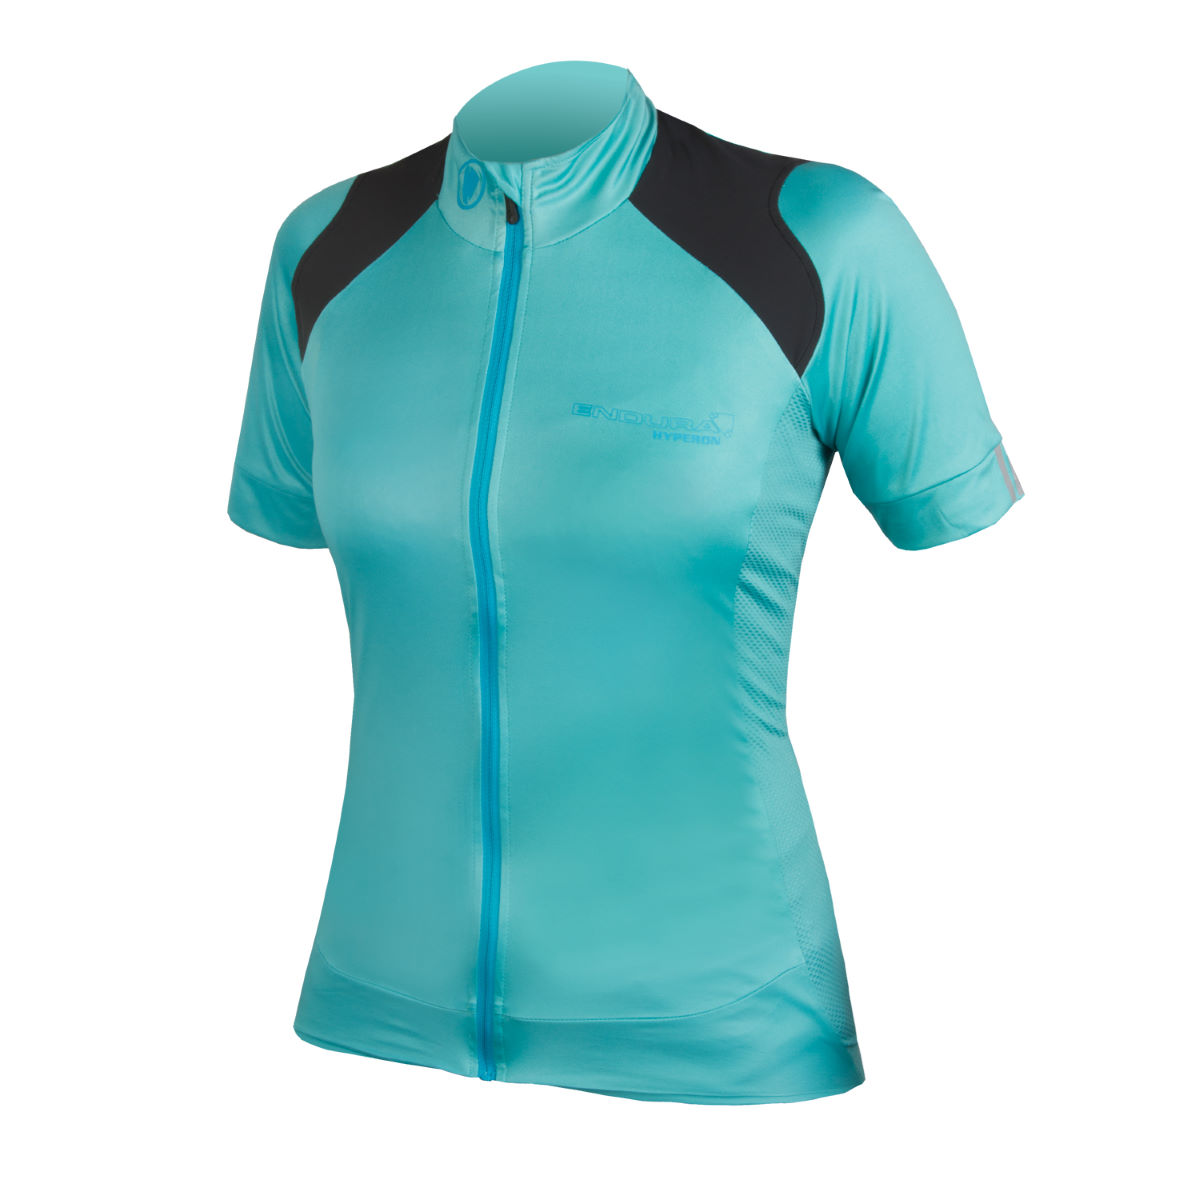 Maillot Femme Endura Hyperon - M Turquoise Maillots